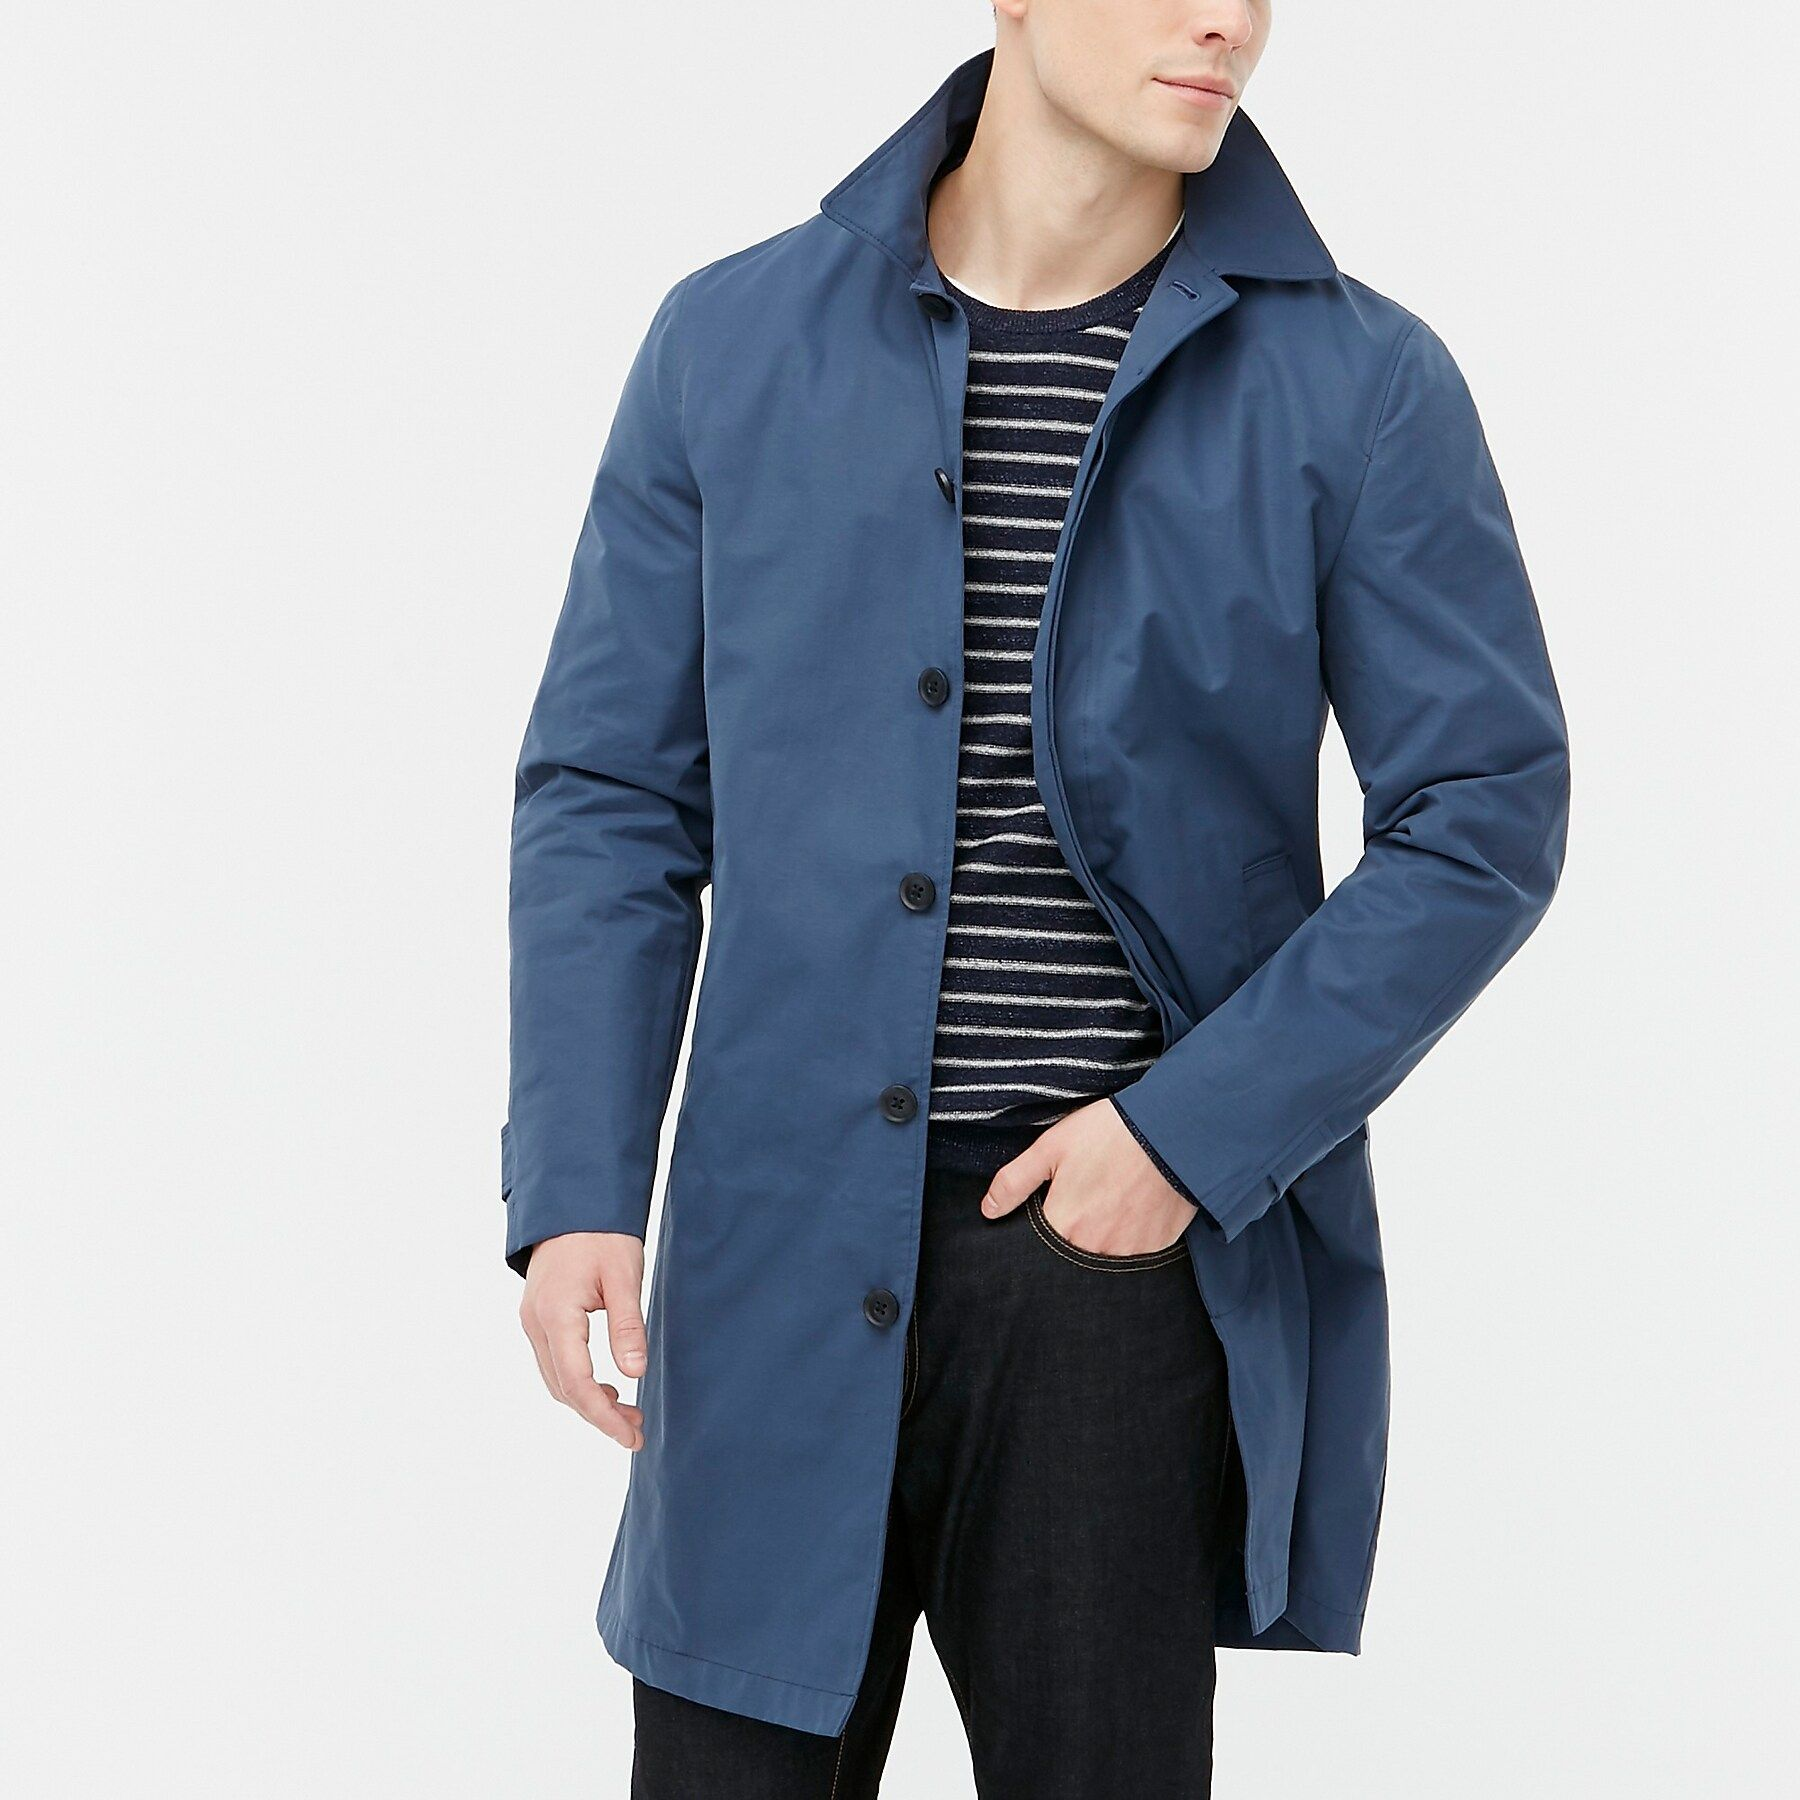 j crew factory trench coat in 2020 trench coat coat on cheap insulated coveralls for men id=34743